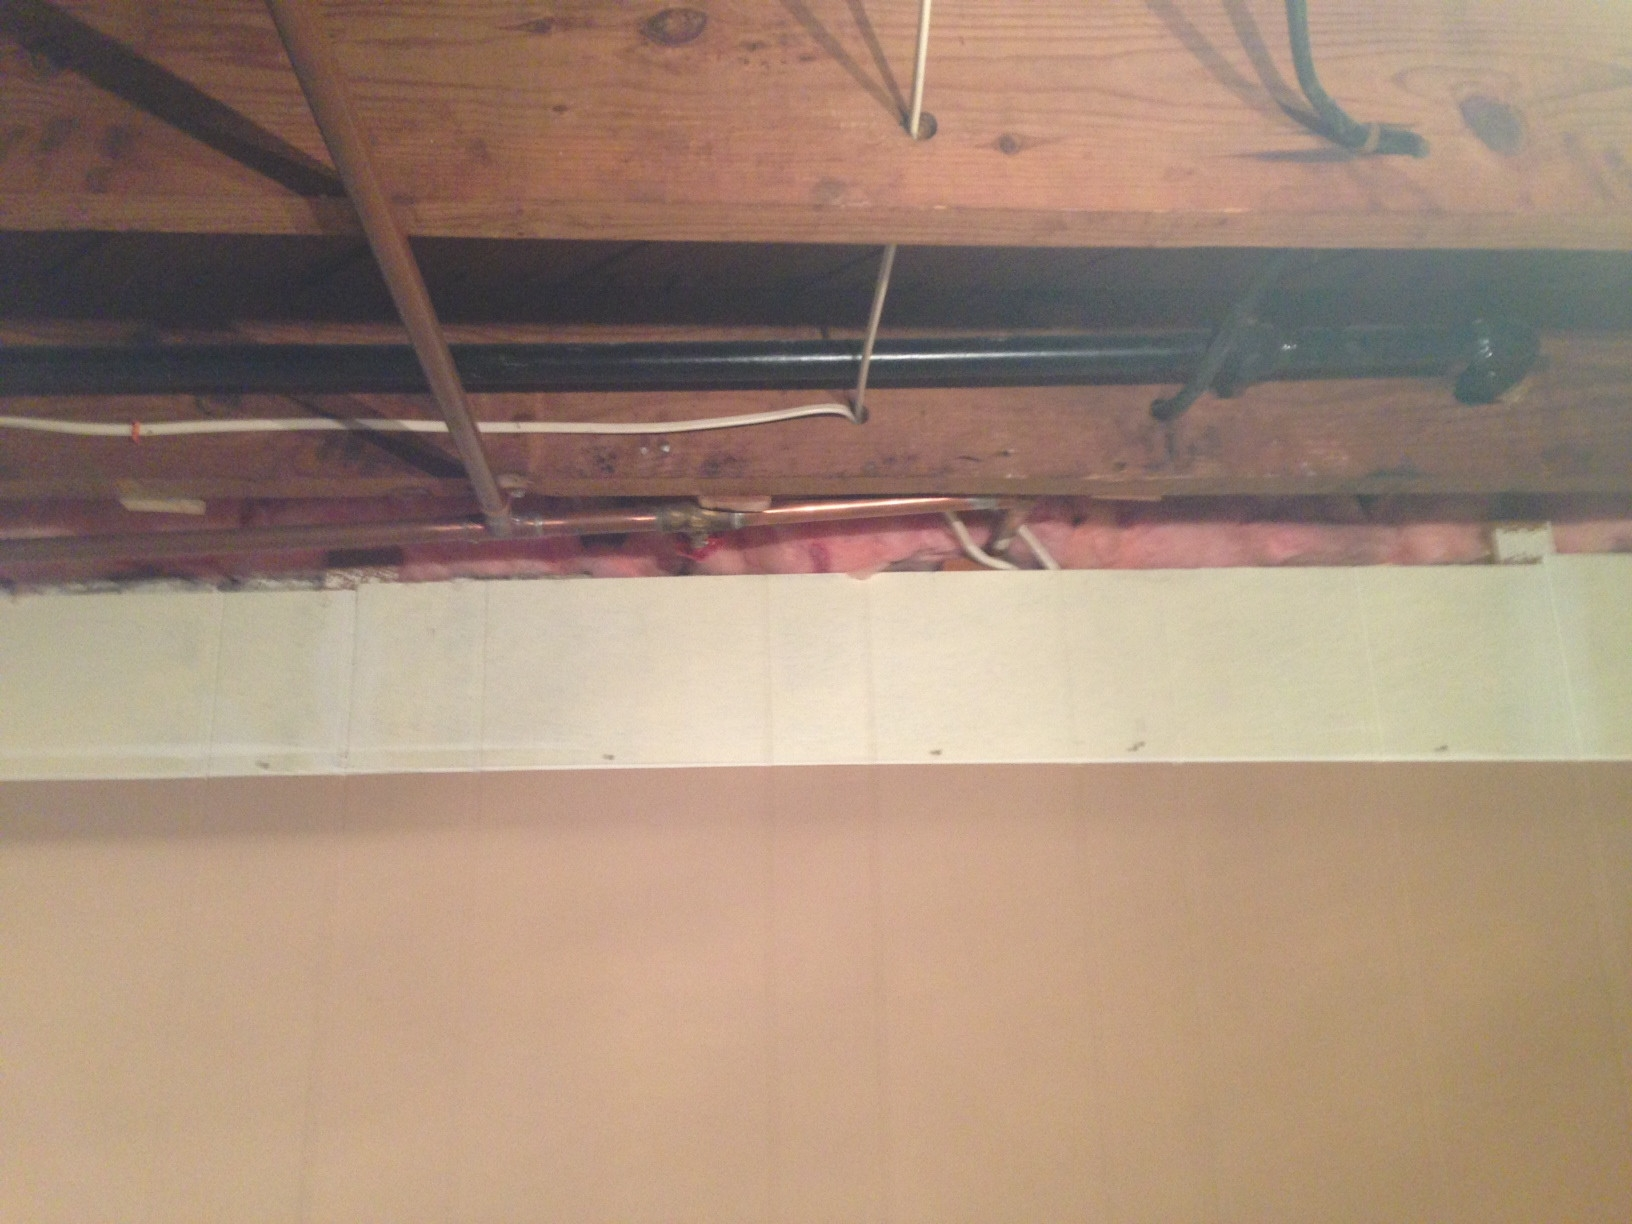 Should I Insulate My Basement Ceiling For Sound